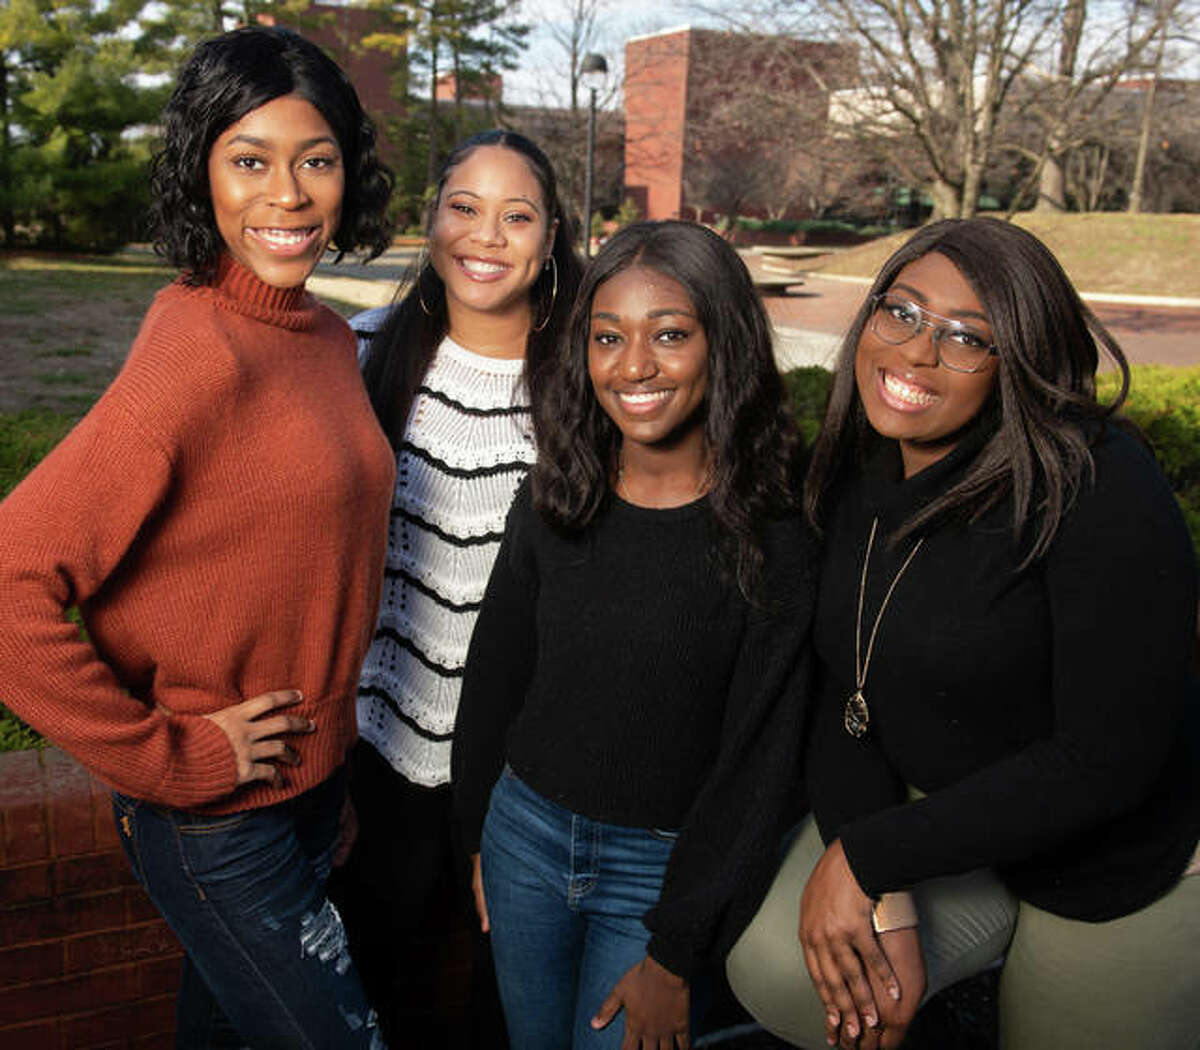 Members of the National Black Association for Speech-Language Hearing (NBASLH) at SIUE will attend the group's national convention in April 2020 in Houston. Shown from left to right are Jeanette Peebles, secretary; Kierston Jamison, vice president; Sydnee Lollis, secretary; and Nydraisha Geeters, president.